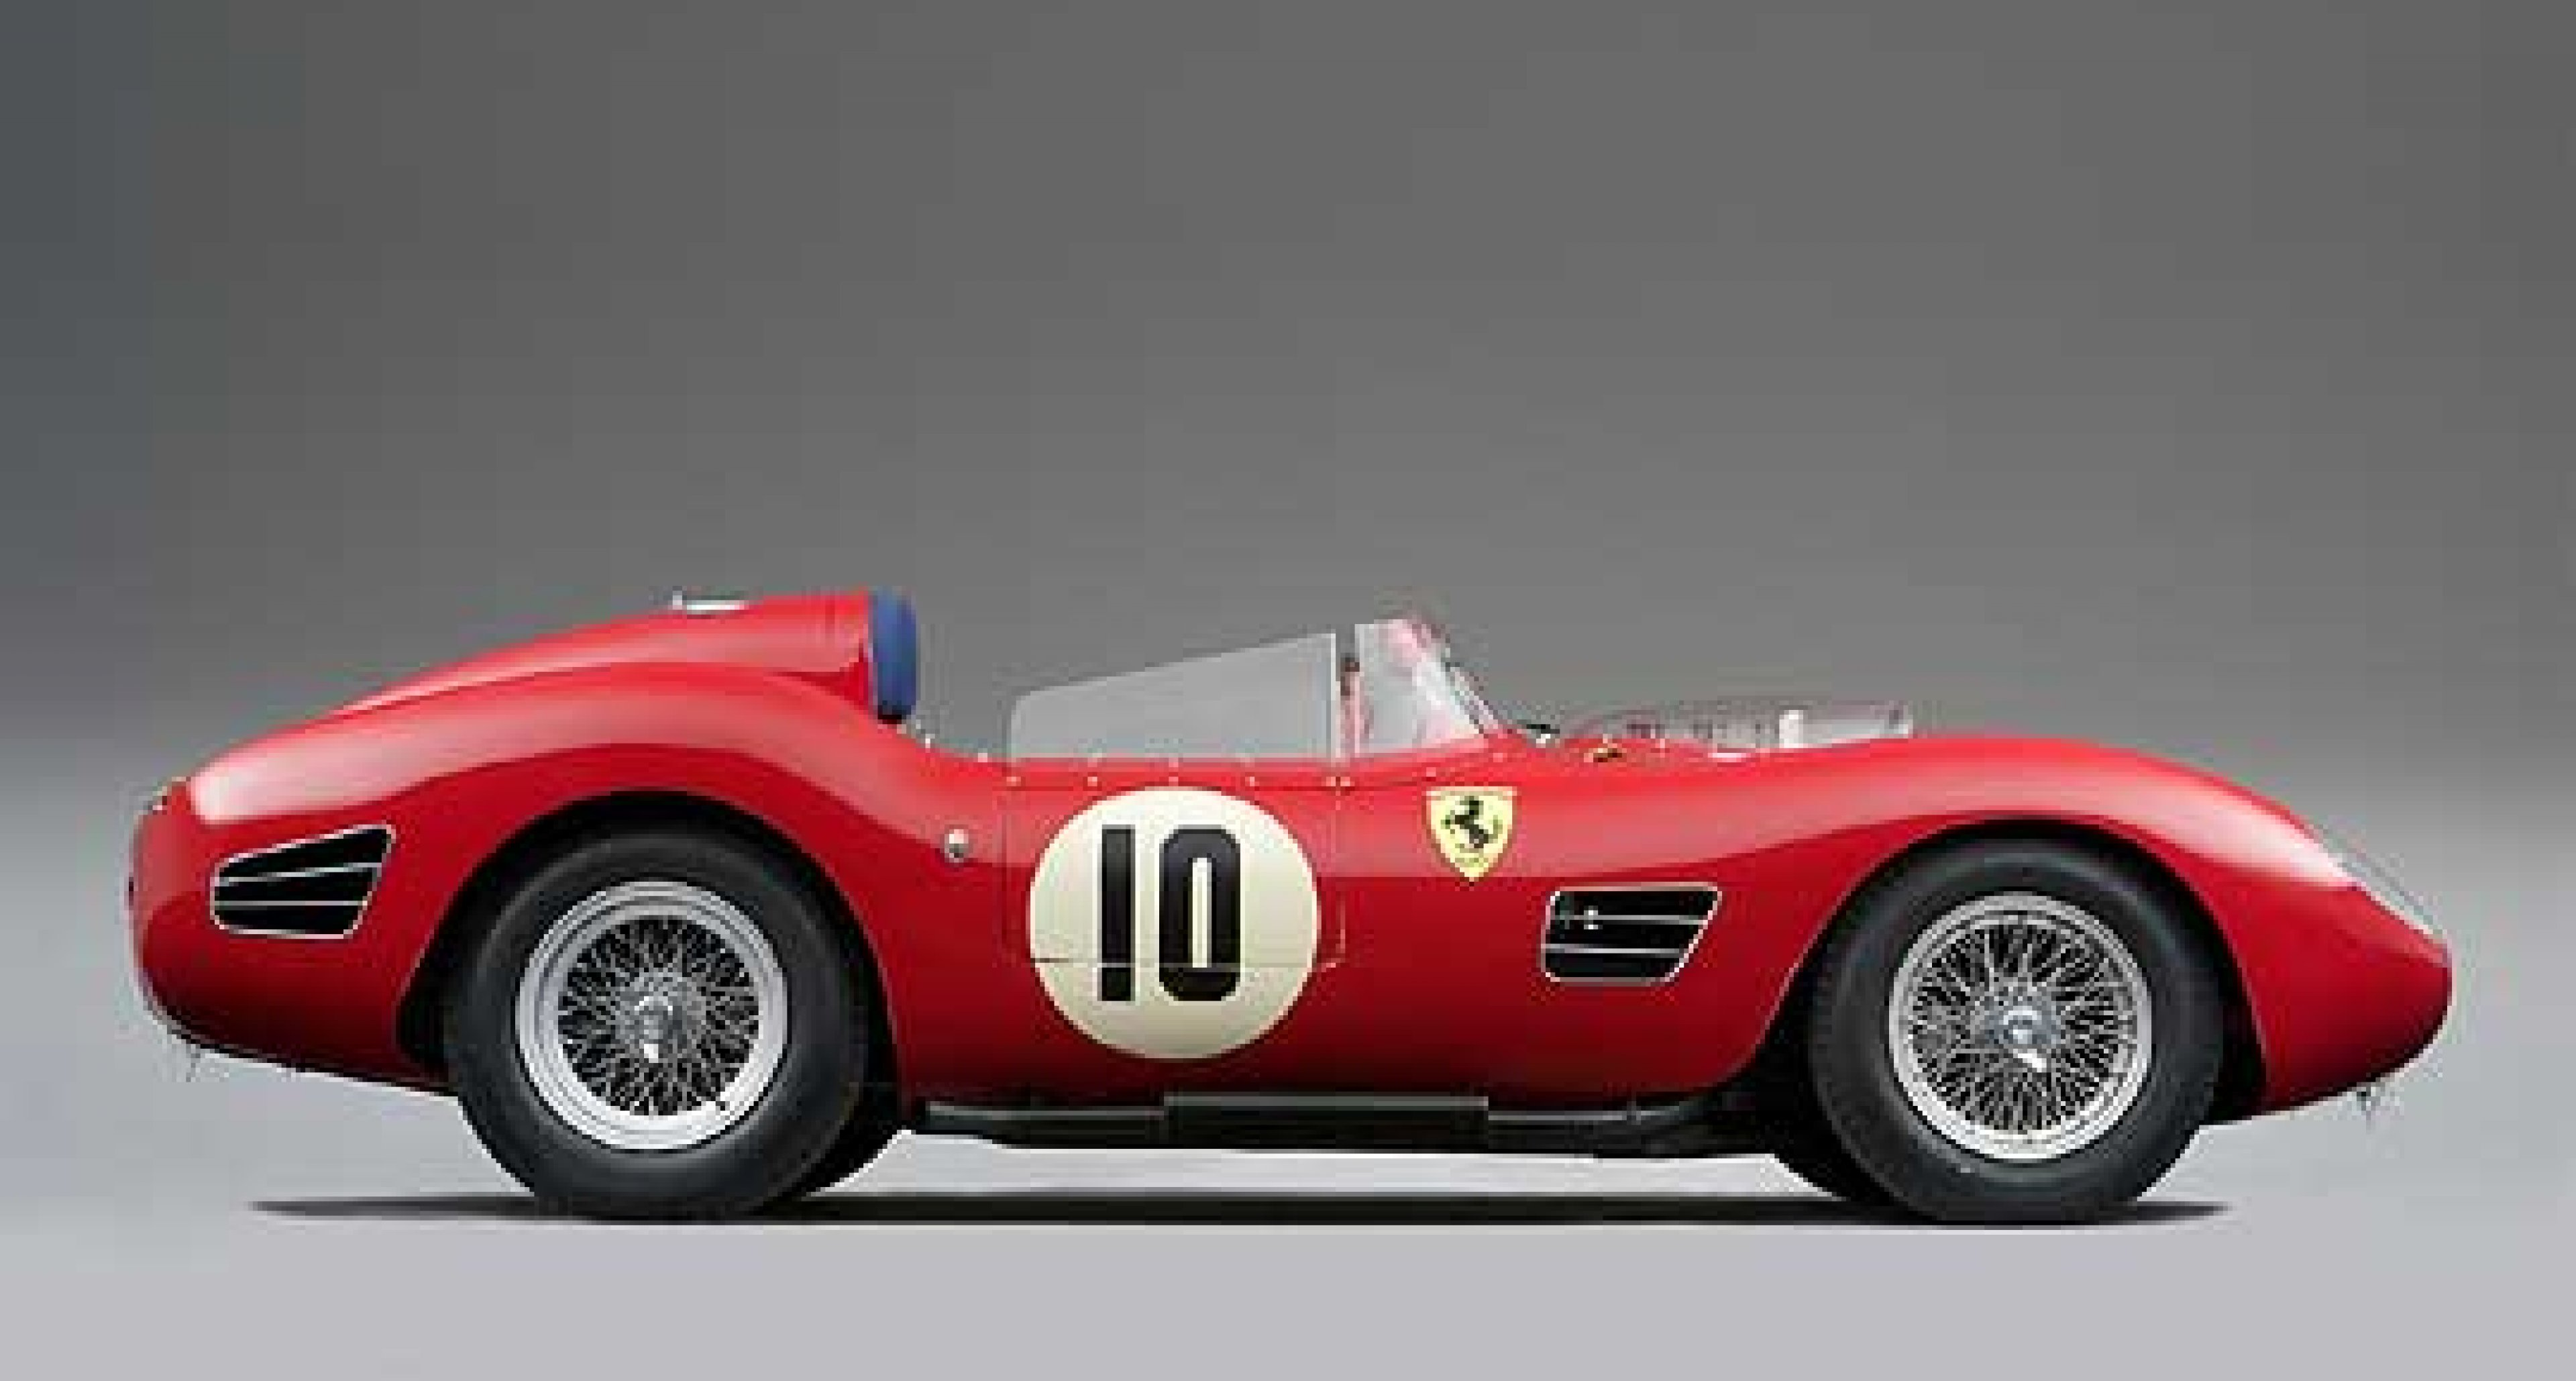 The 2008 Ferrari Auction at Maranello